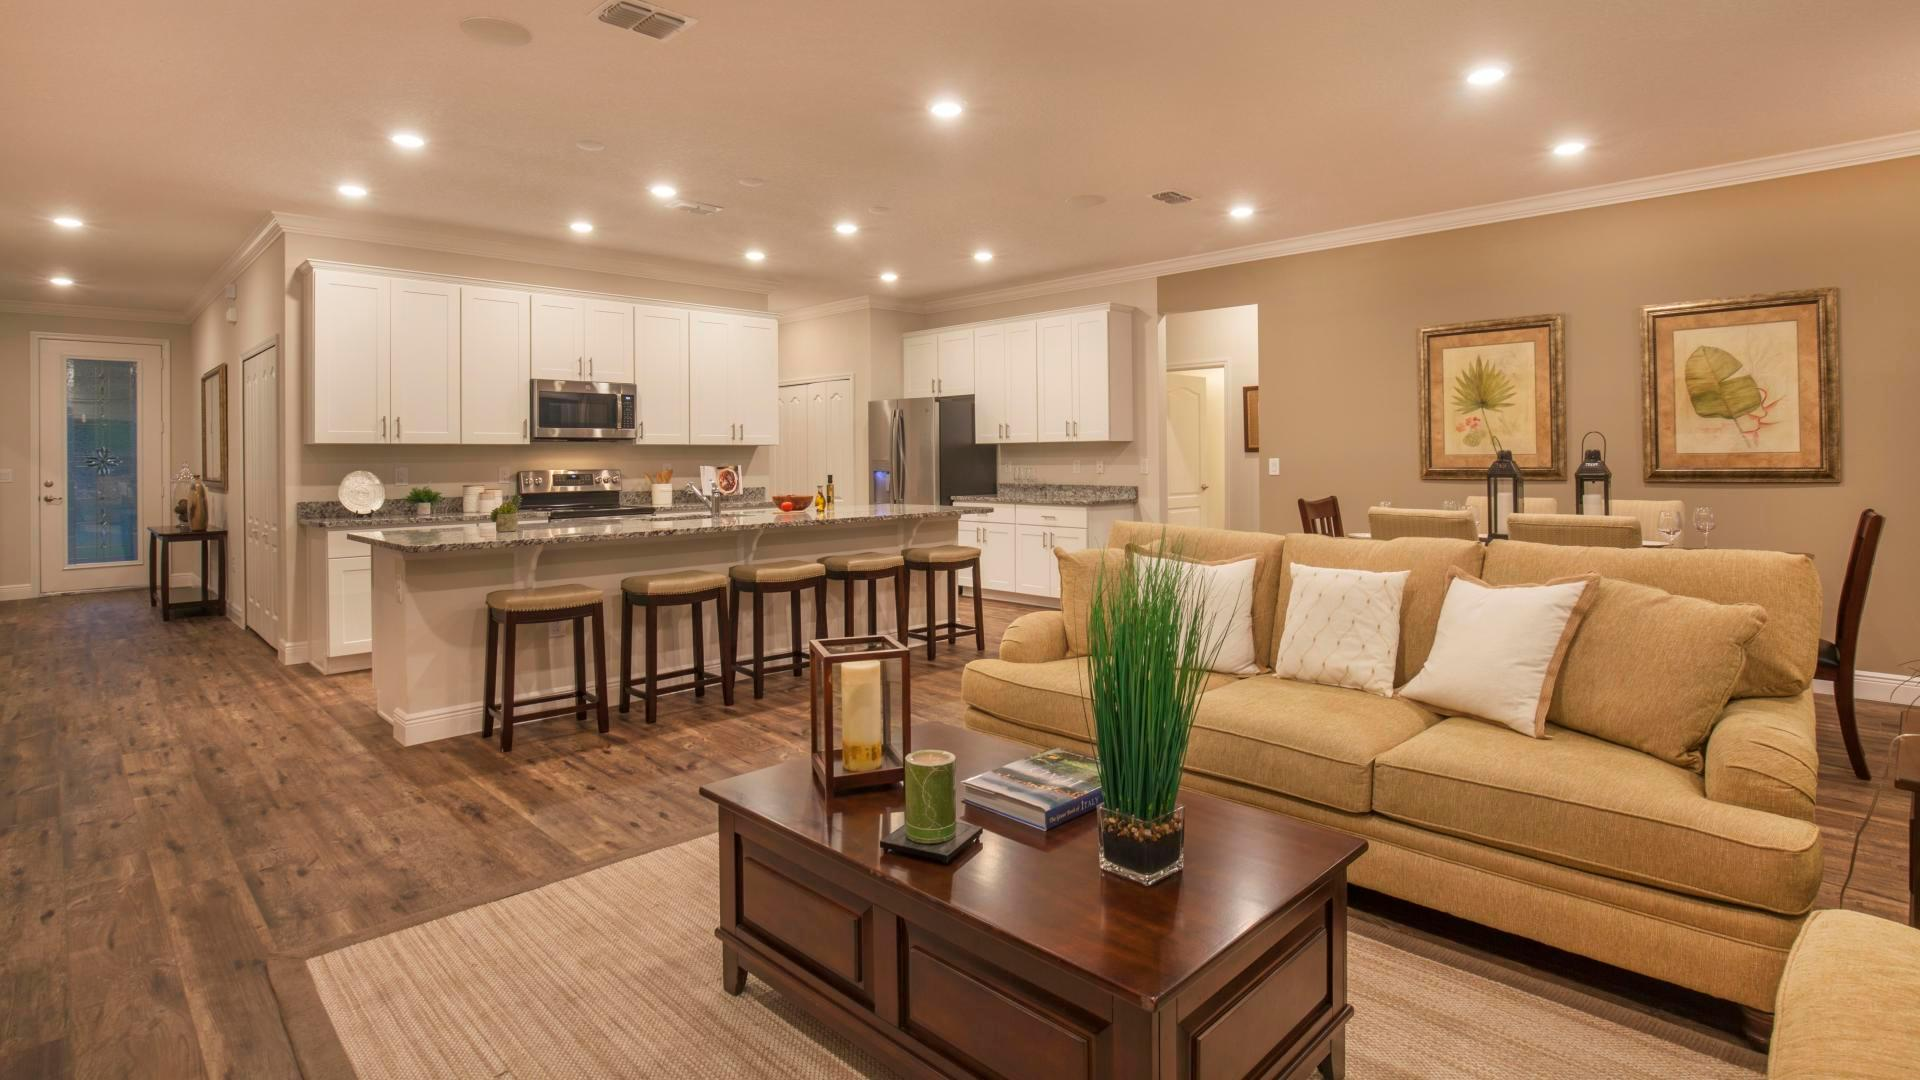 Living Area featured in the Wilmington By Maronda Homes in Punta Gorda, FL